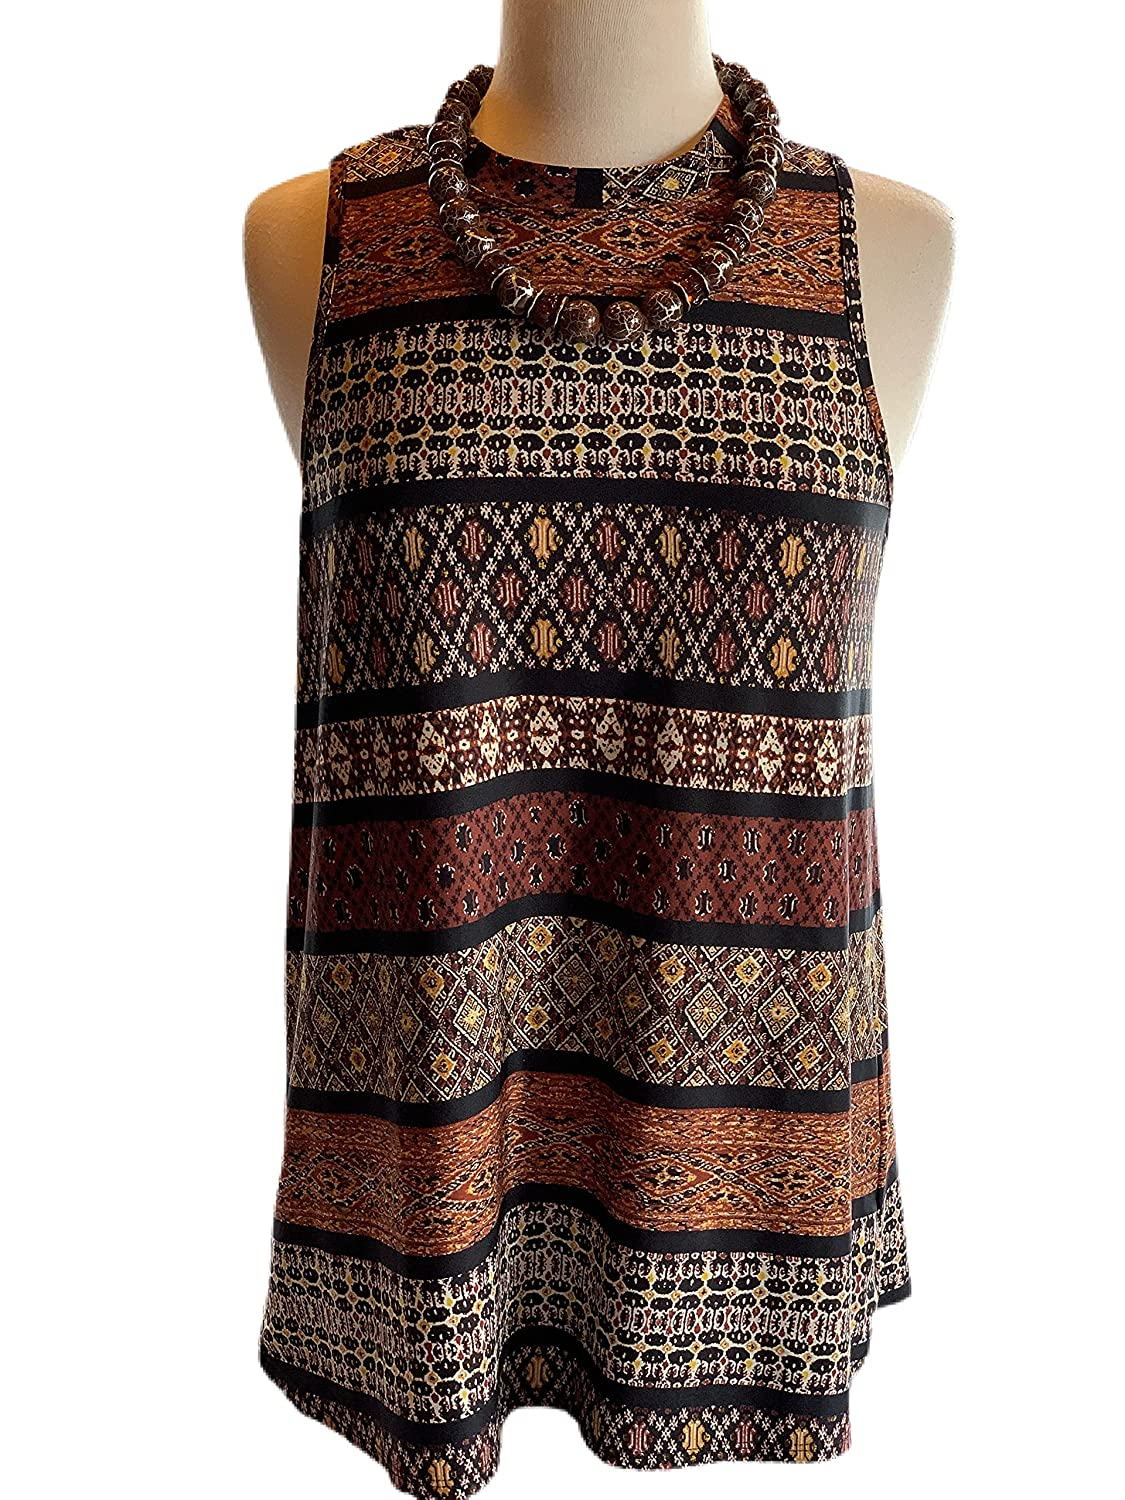 Custom Coutre M Eartone boho Ranking TOP20 tunic nec beaded crackle brwon Limited time sale with